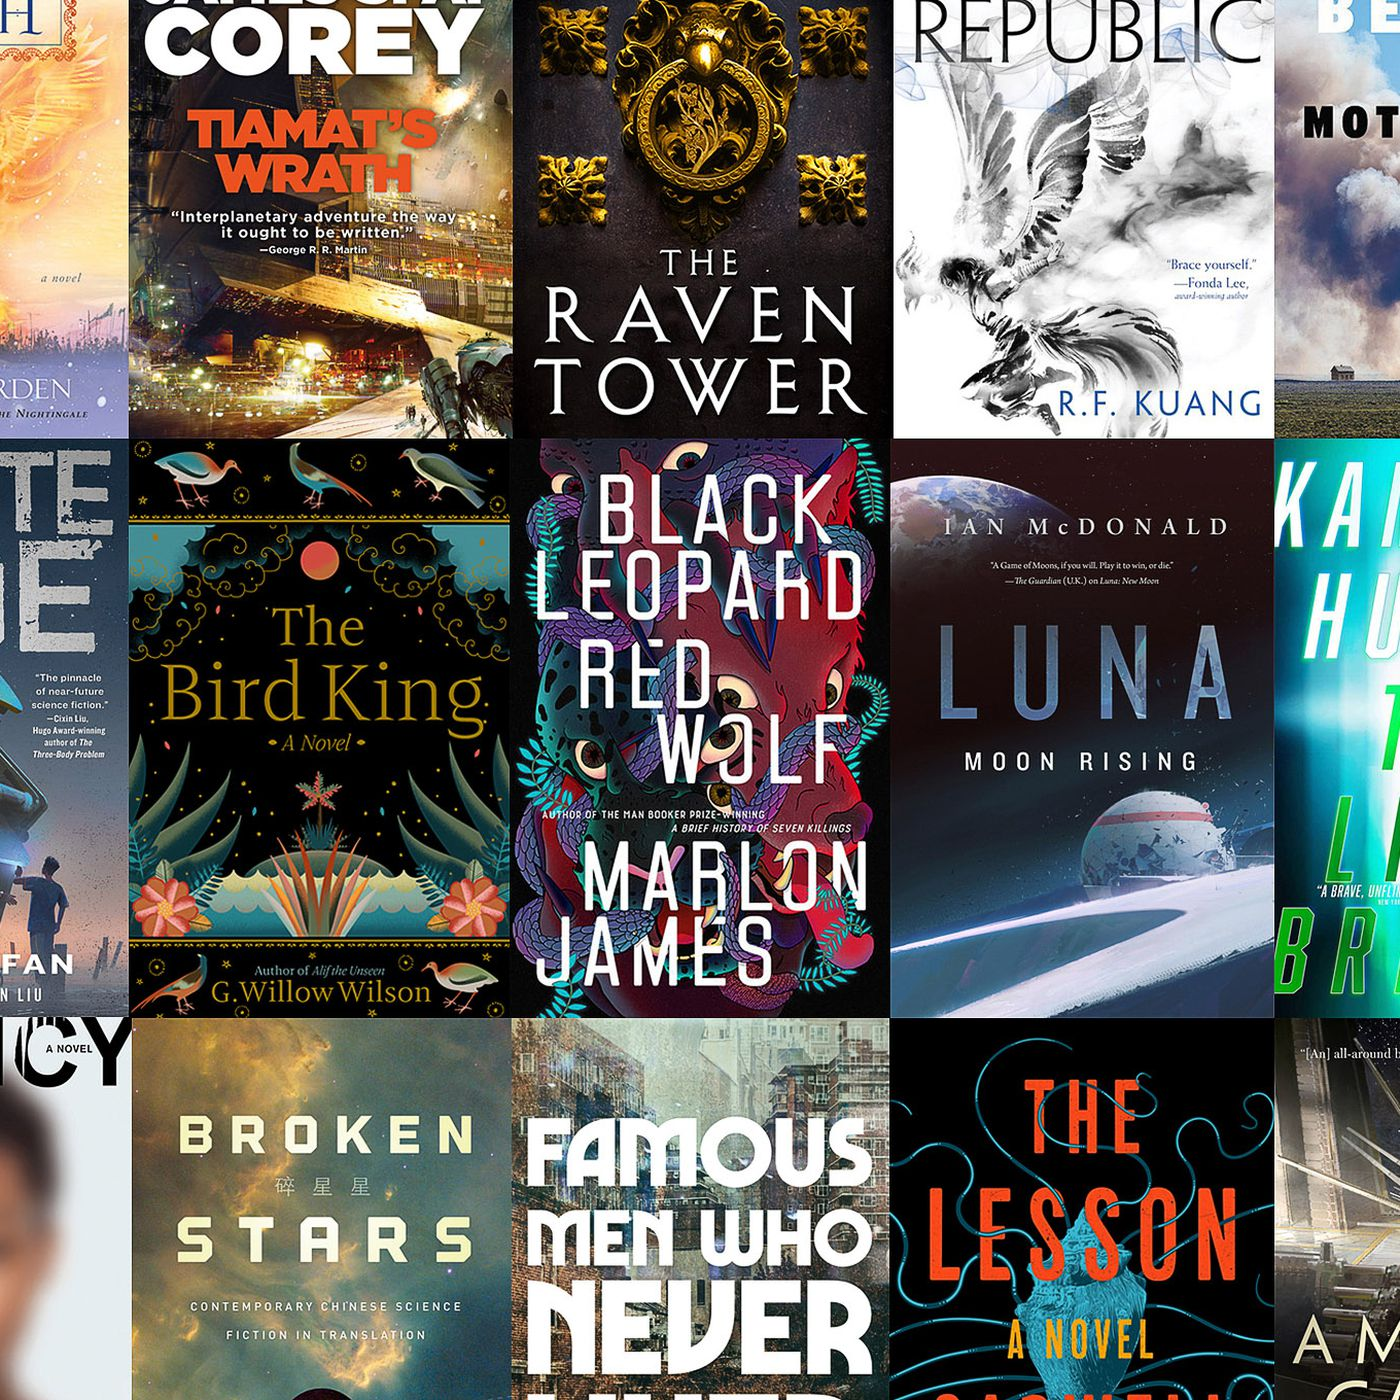 All The Science Fiction And Fantasy Books We Re Looking